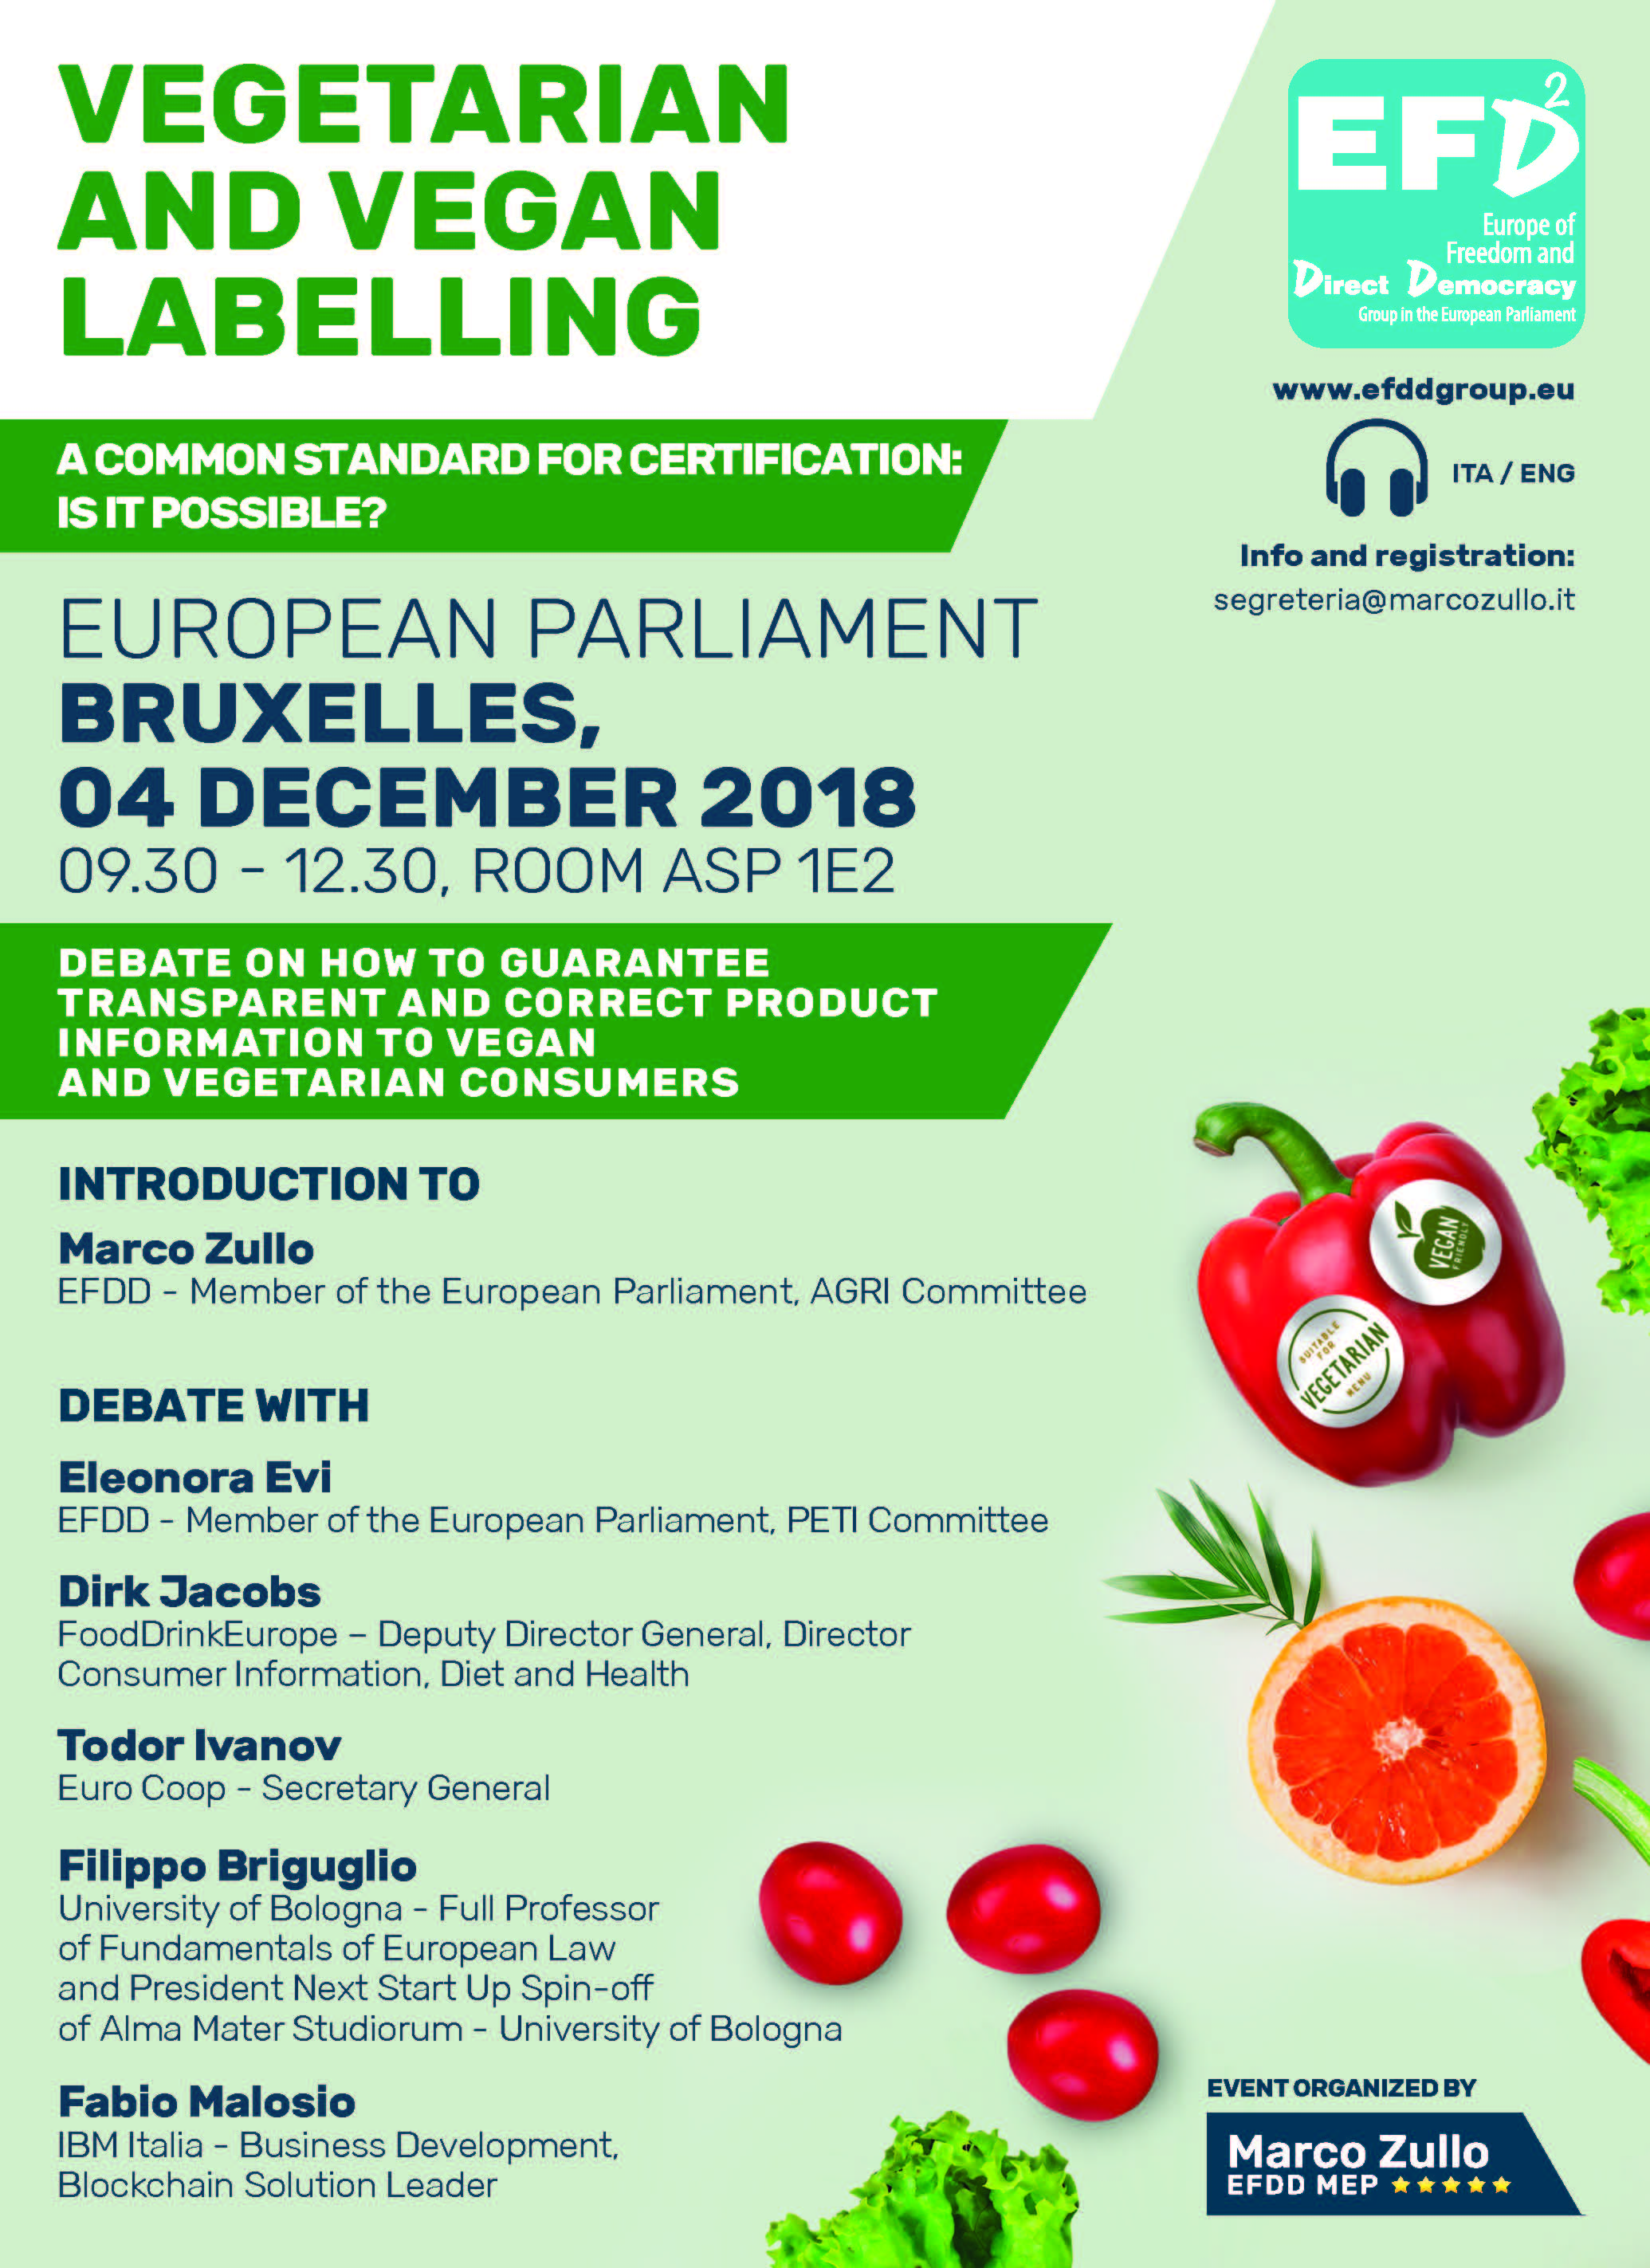 4 DICEMBRE 2018 - VEGAN AND VEGETARIAN LABELLIG - CONGRESSO AL PARLAMENTO EUROPEO